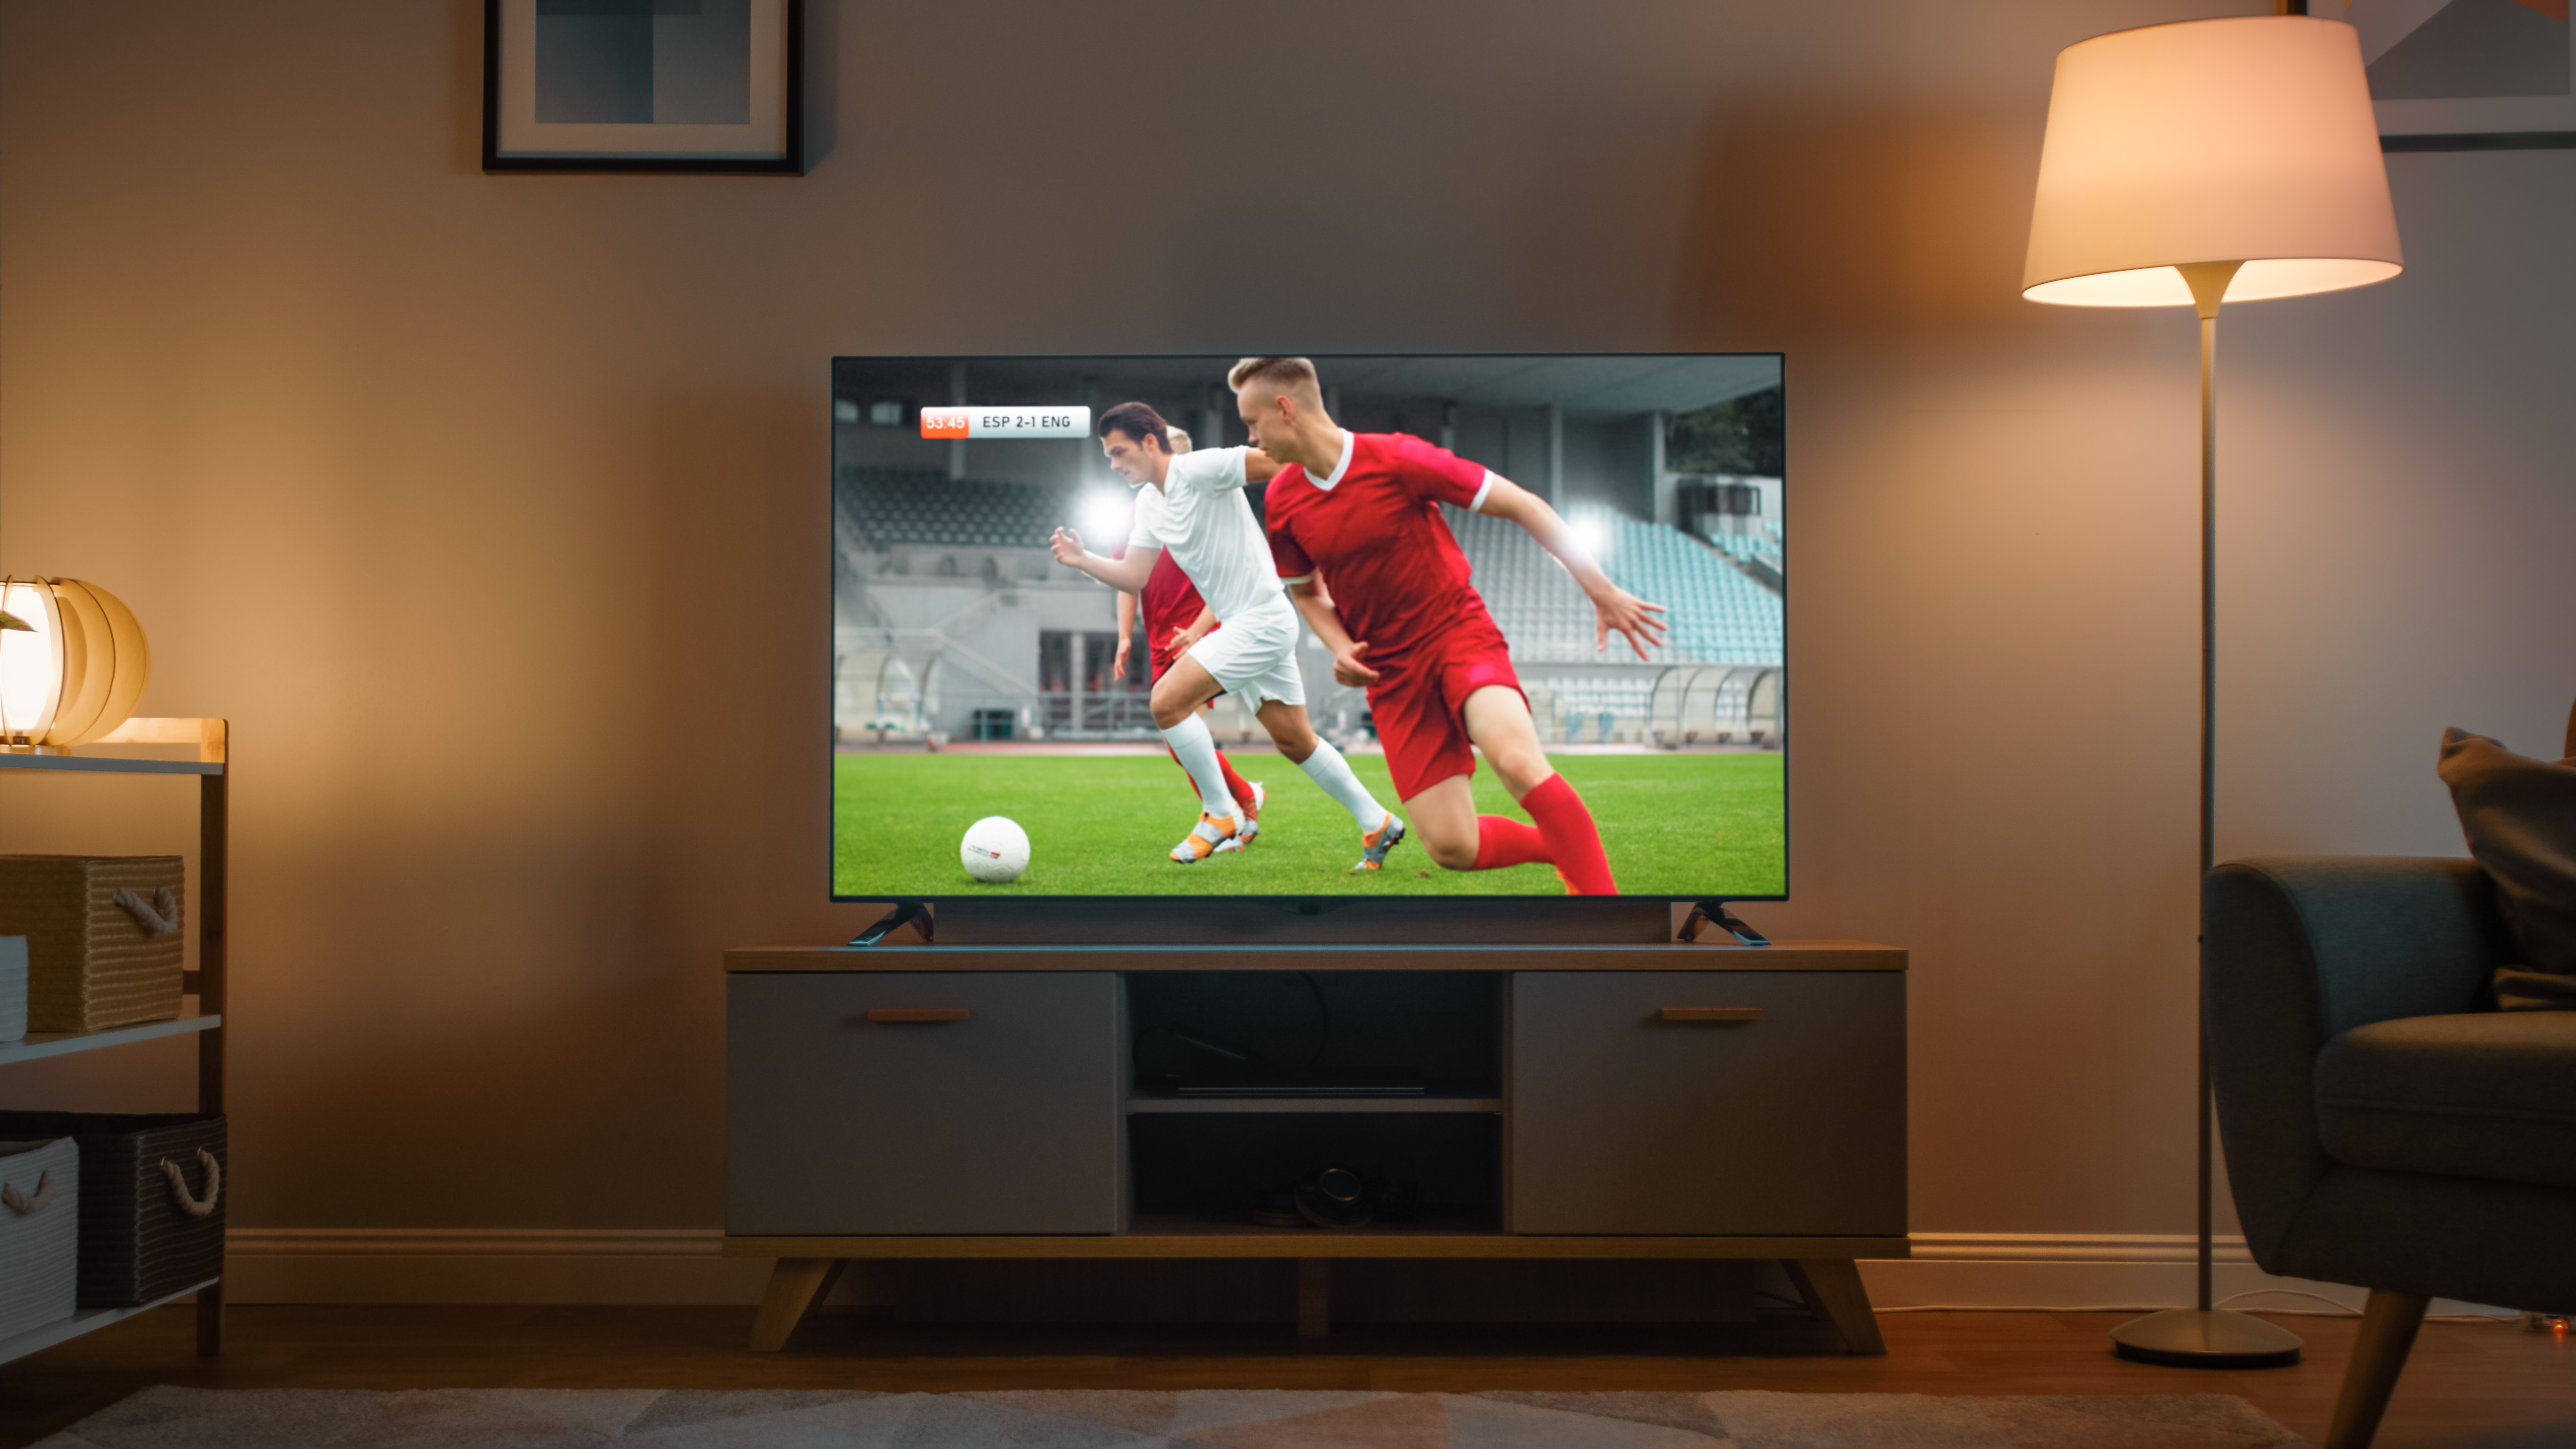 Shot of a TV with Soccer Match. Cozy Evening Living Room with a Chair and Lamps Turned On at Home.